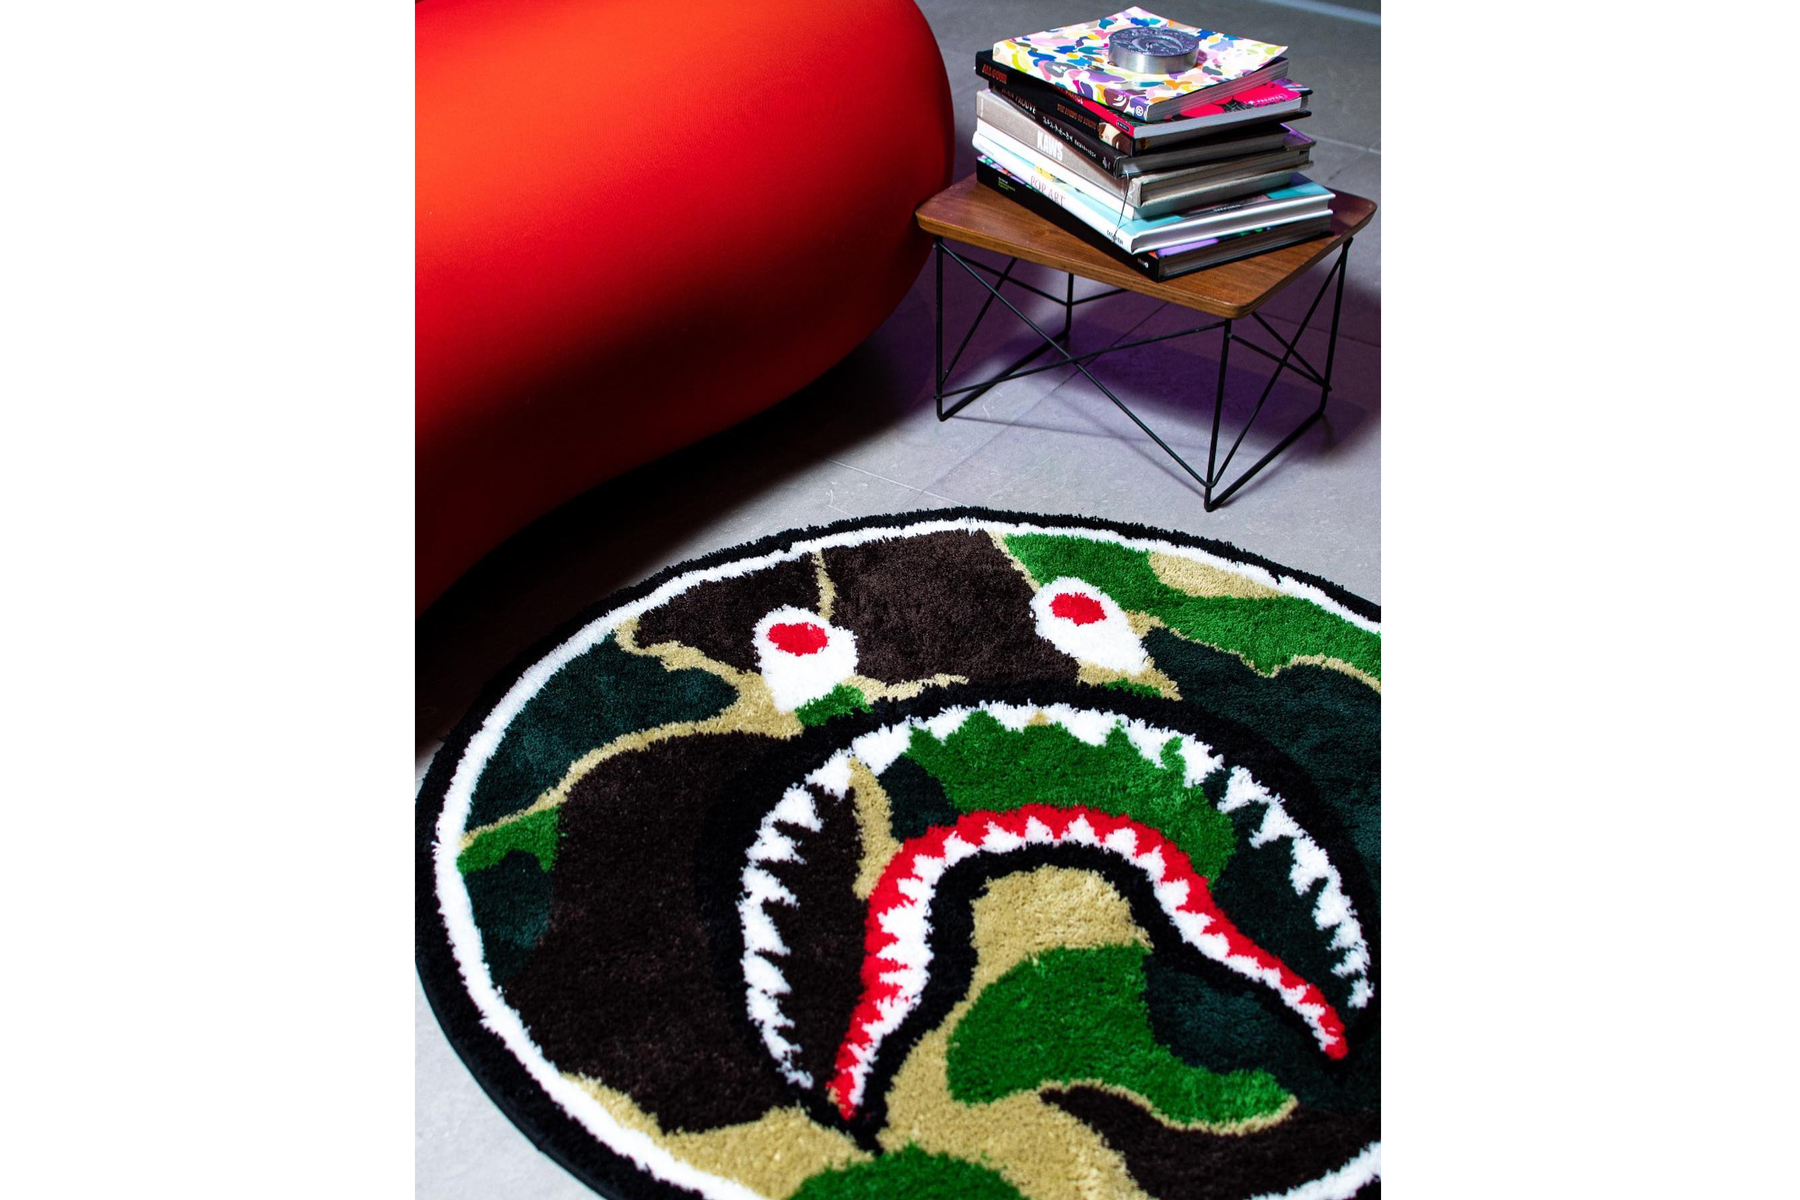 BAPE ABC CAMO Shark Rug & Paper Weight Release a bathing ape green shark hoodie home accessories home decor